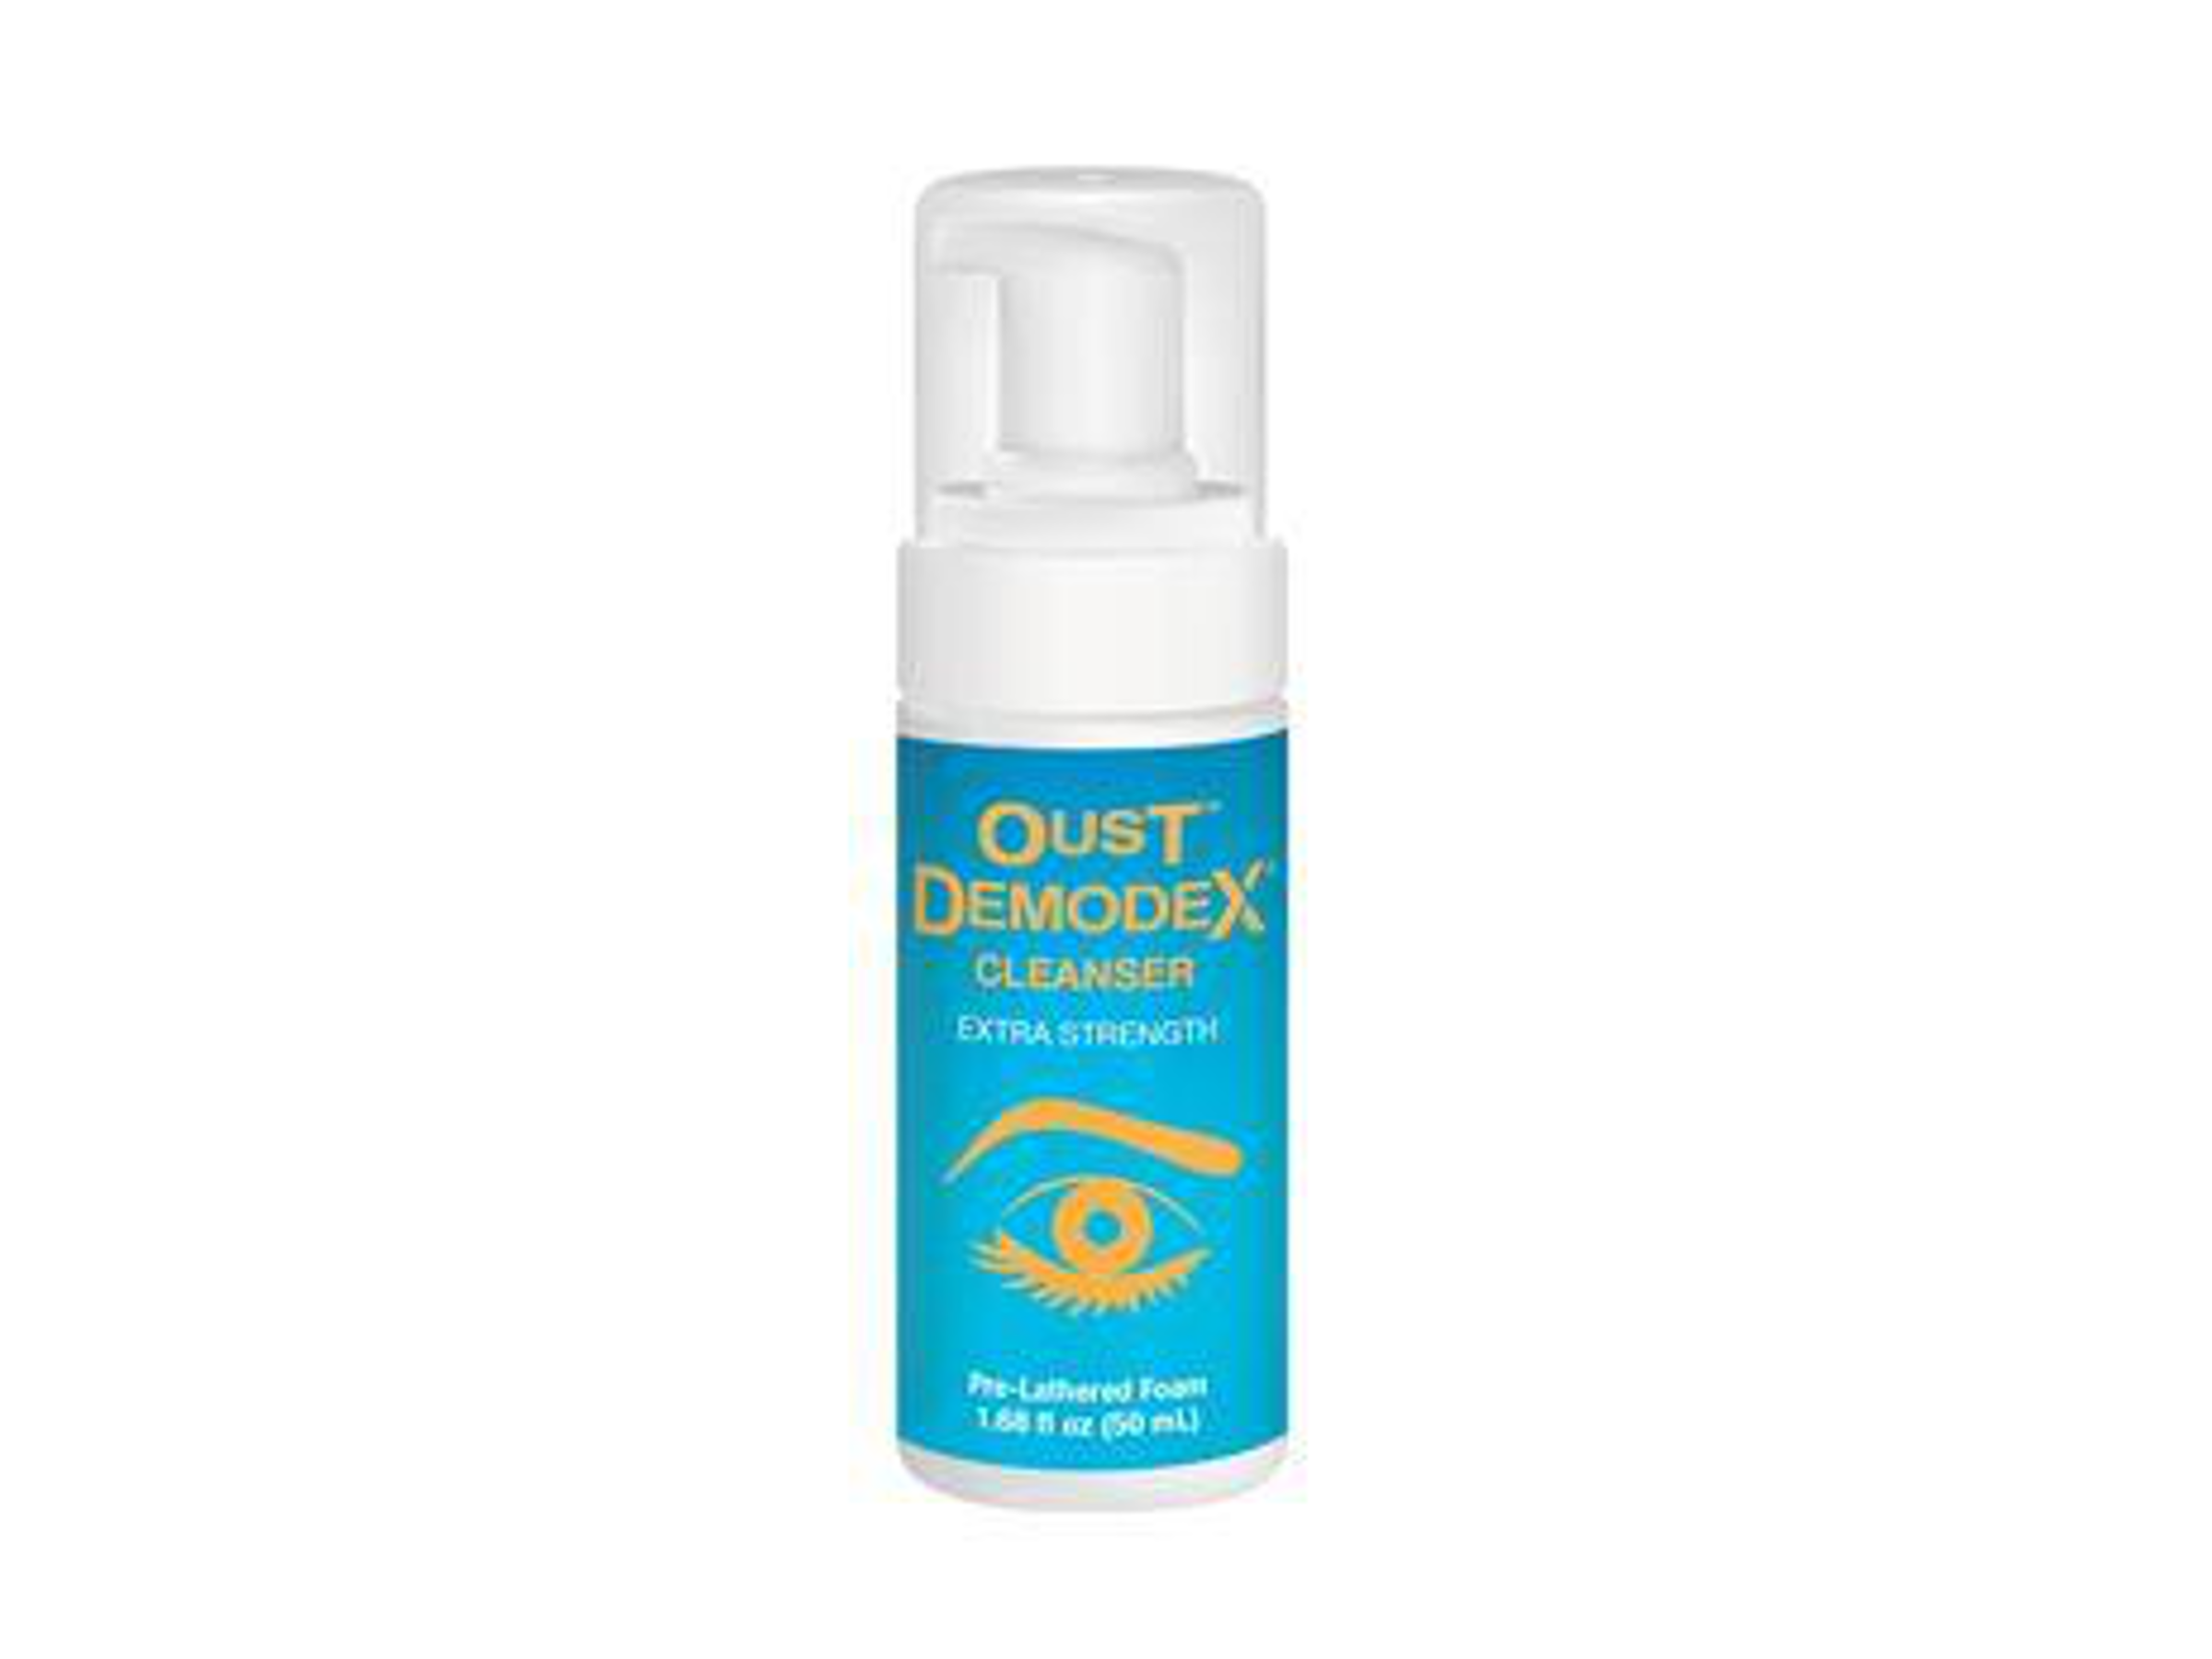 Image of OcuSoft Oust Demodex Cleanser 50mL